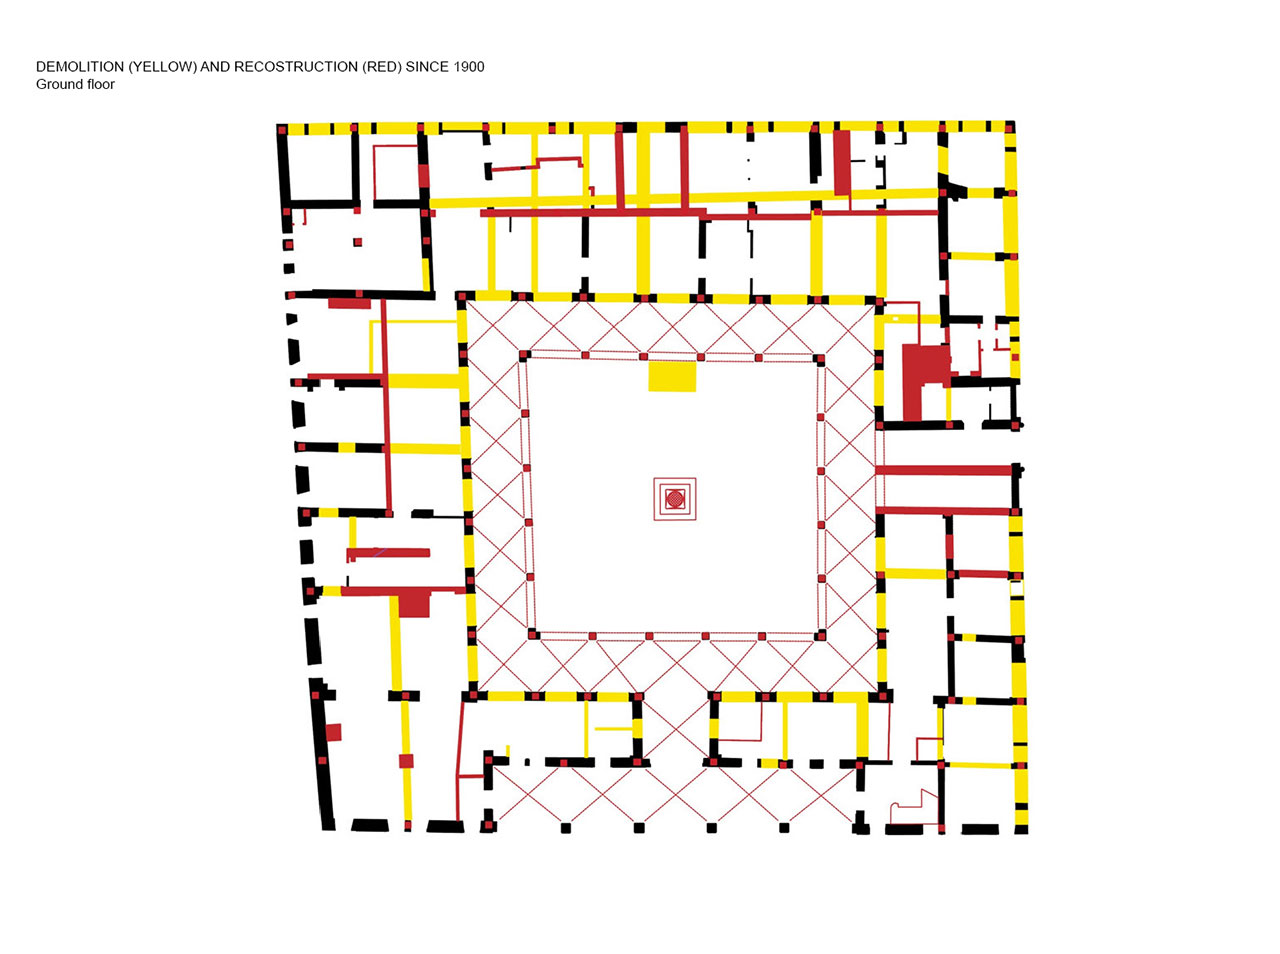 Il Fondaco dei Tedeschi, ground floor plan with demolition (yellow) and construction (red) since 1900. Image courtesy OMA.